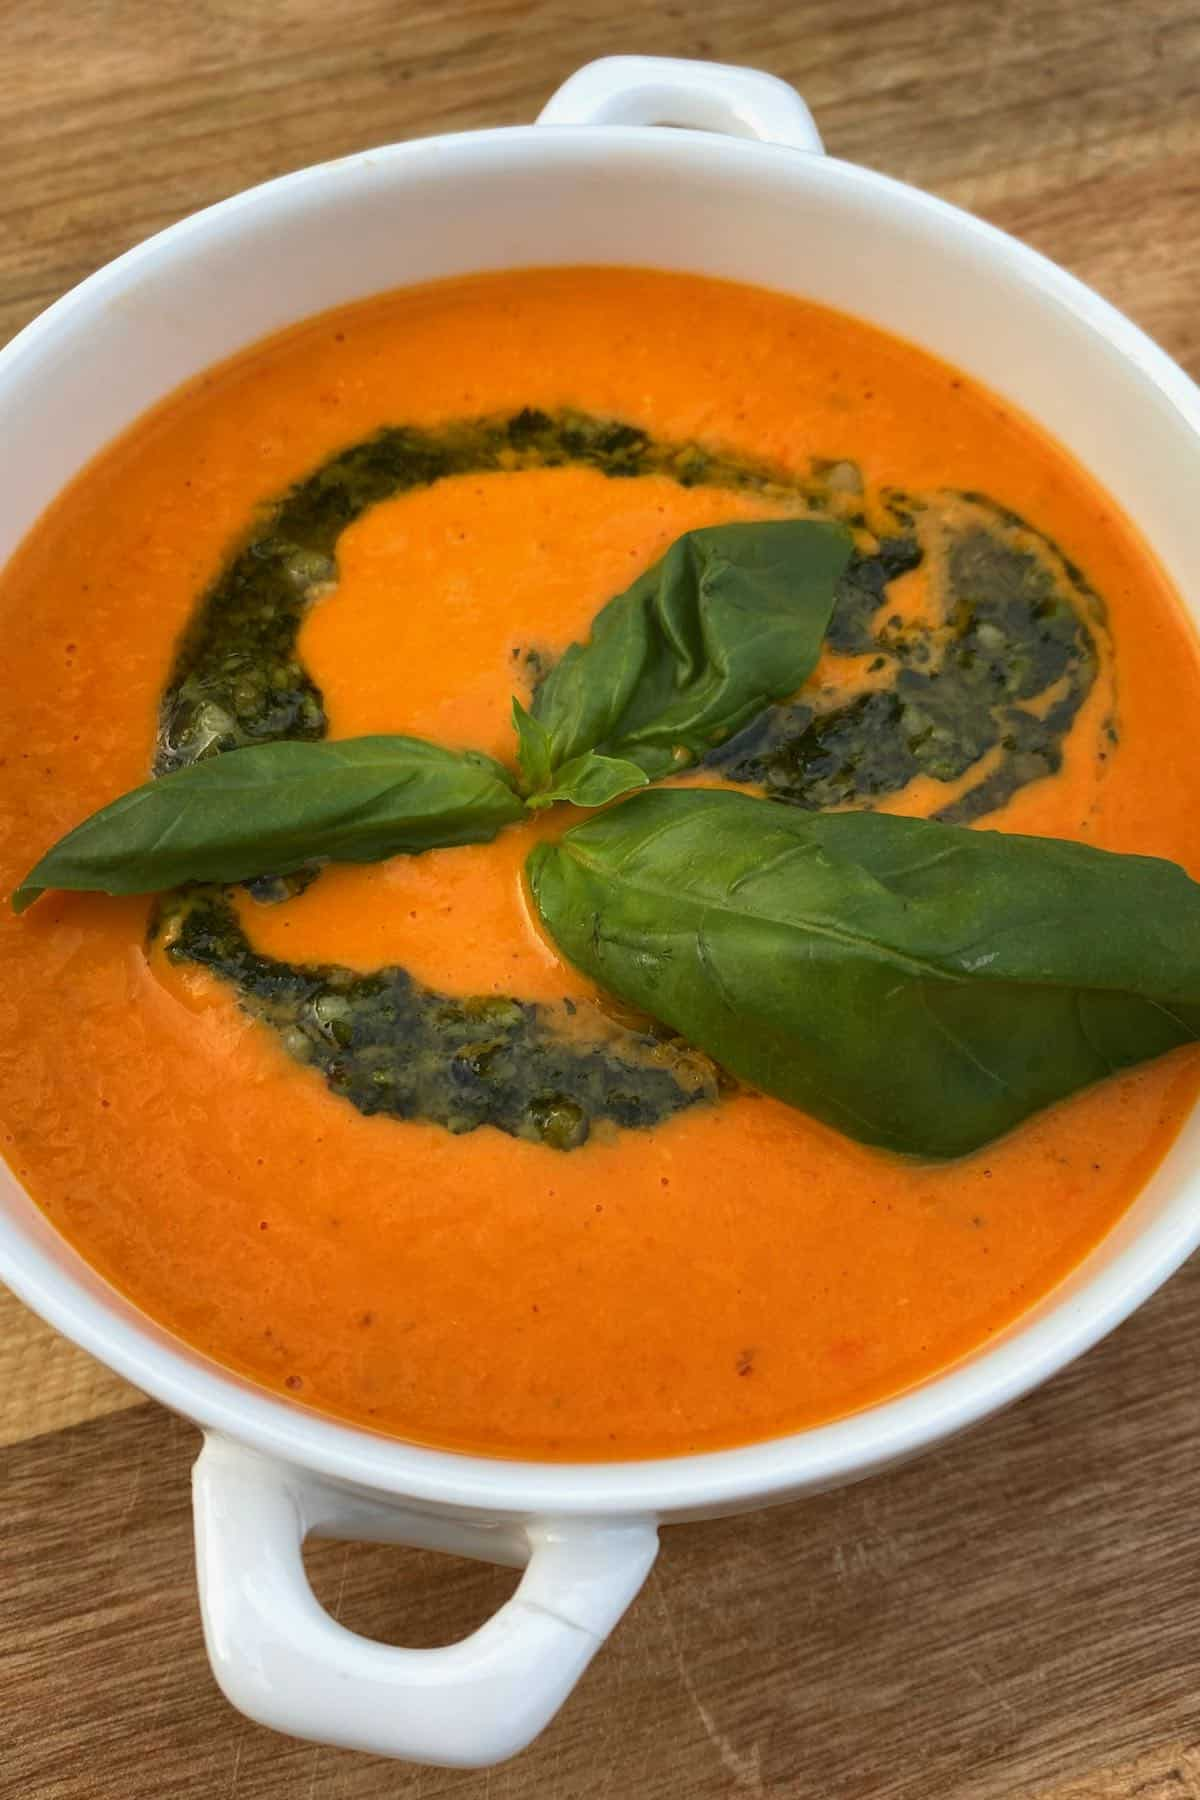 A bowl with tomato soup and pesto drizzle